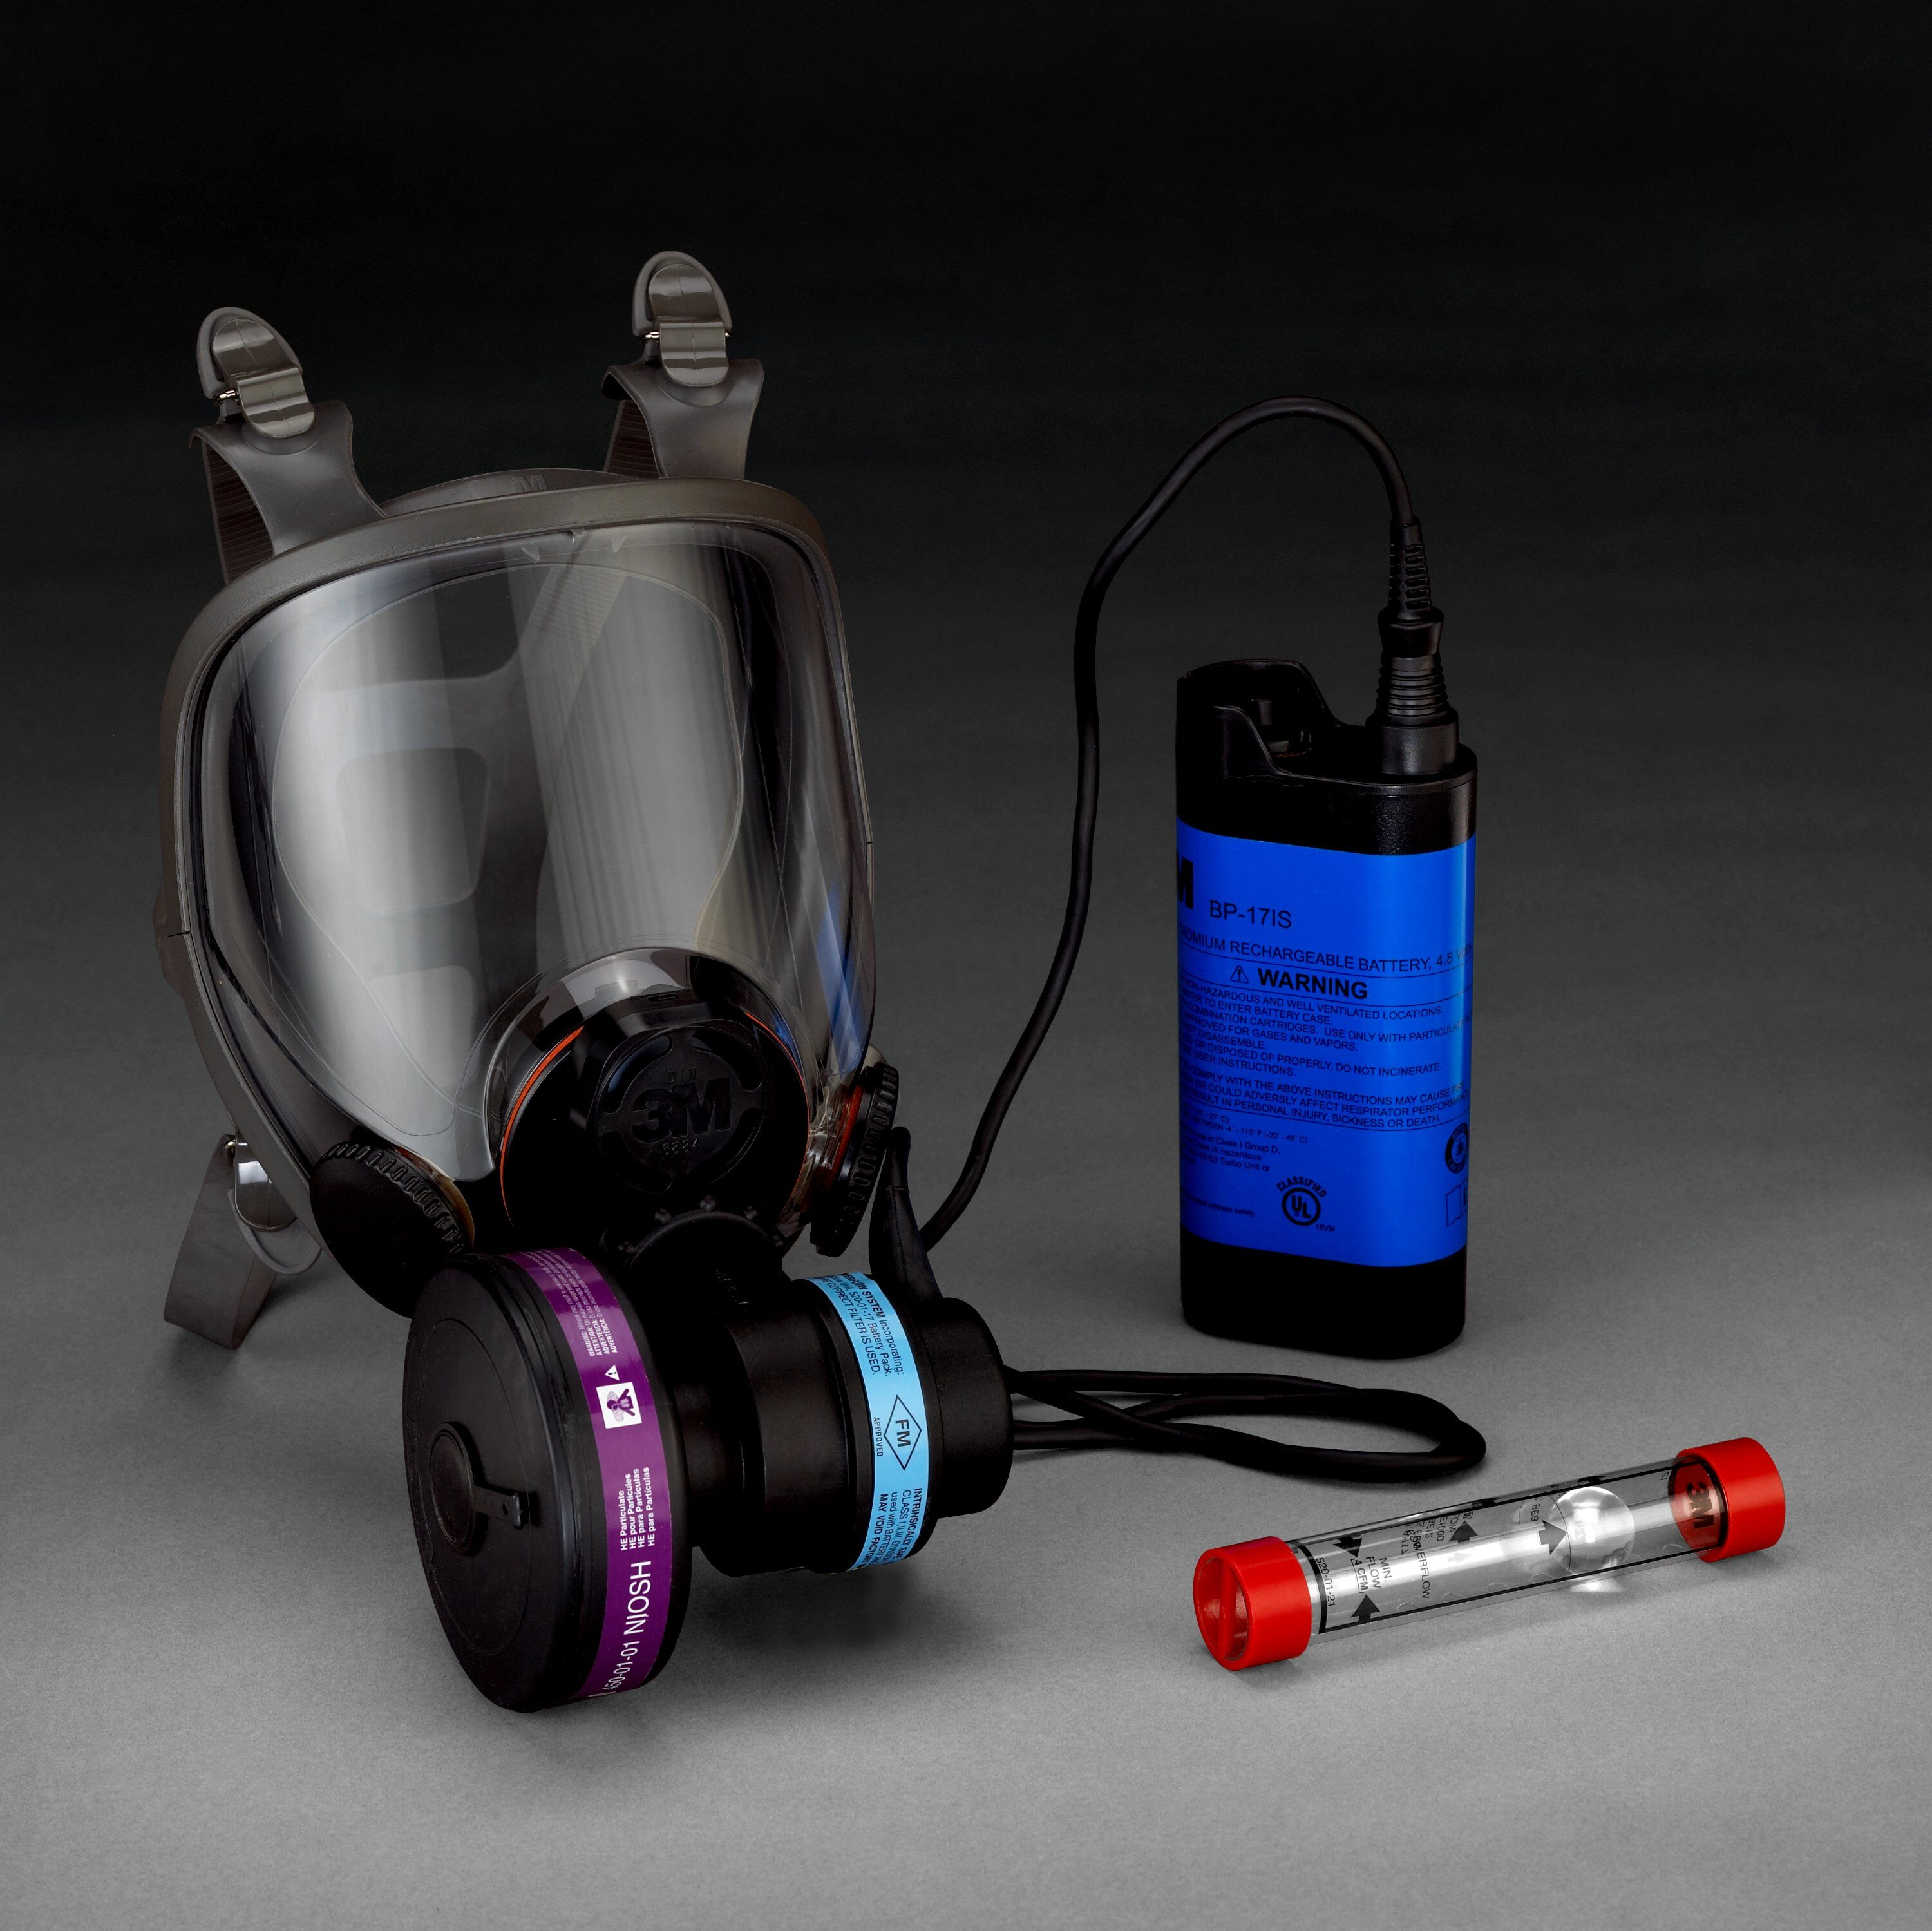 3M™ 6900PF Lightweight Powered Air Purifying Respirator System, L, HEPA Filters and Cartridges, Rechargeable Ni-Cd Battery, ANSI Z87.1-2003, OSHA-29 CFR 1910.134, CSA Z94.4